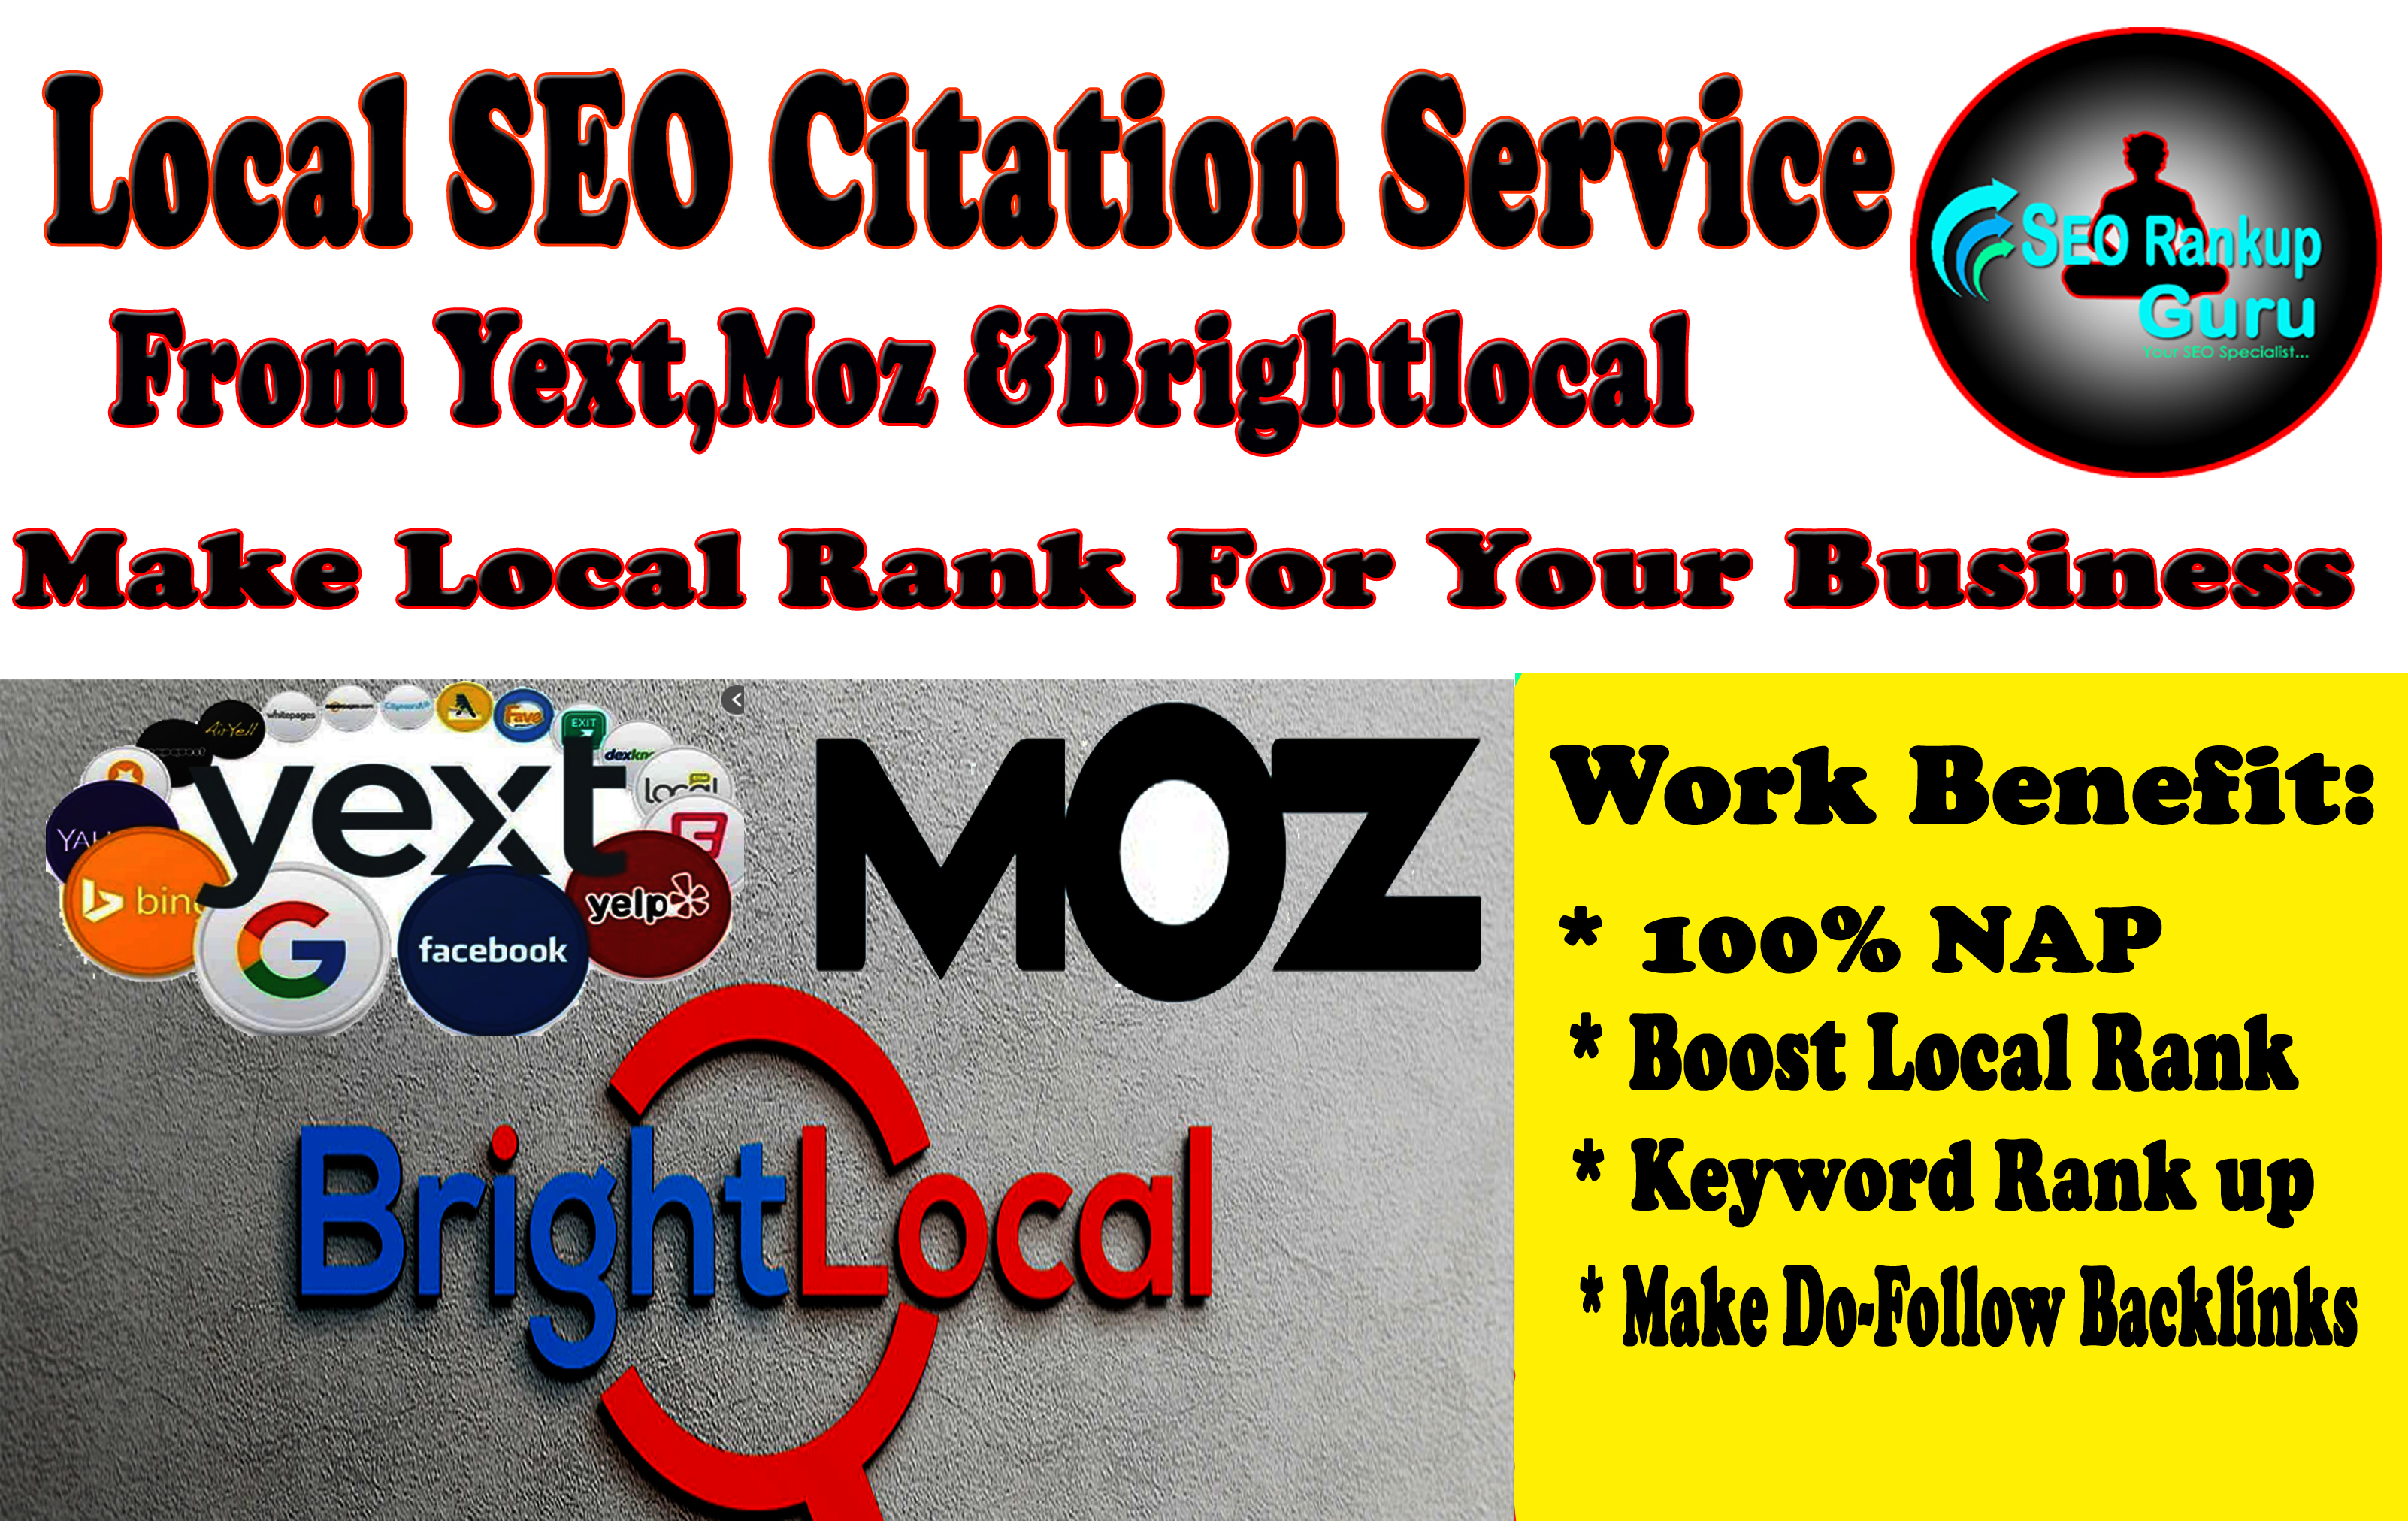 I Will Do Top 45 Local SEO Citation From Yext, Moz And Brightlocal List For Local Rank